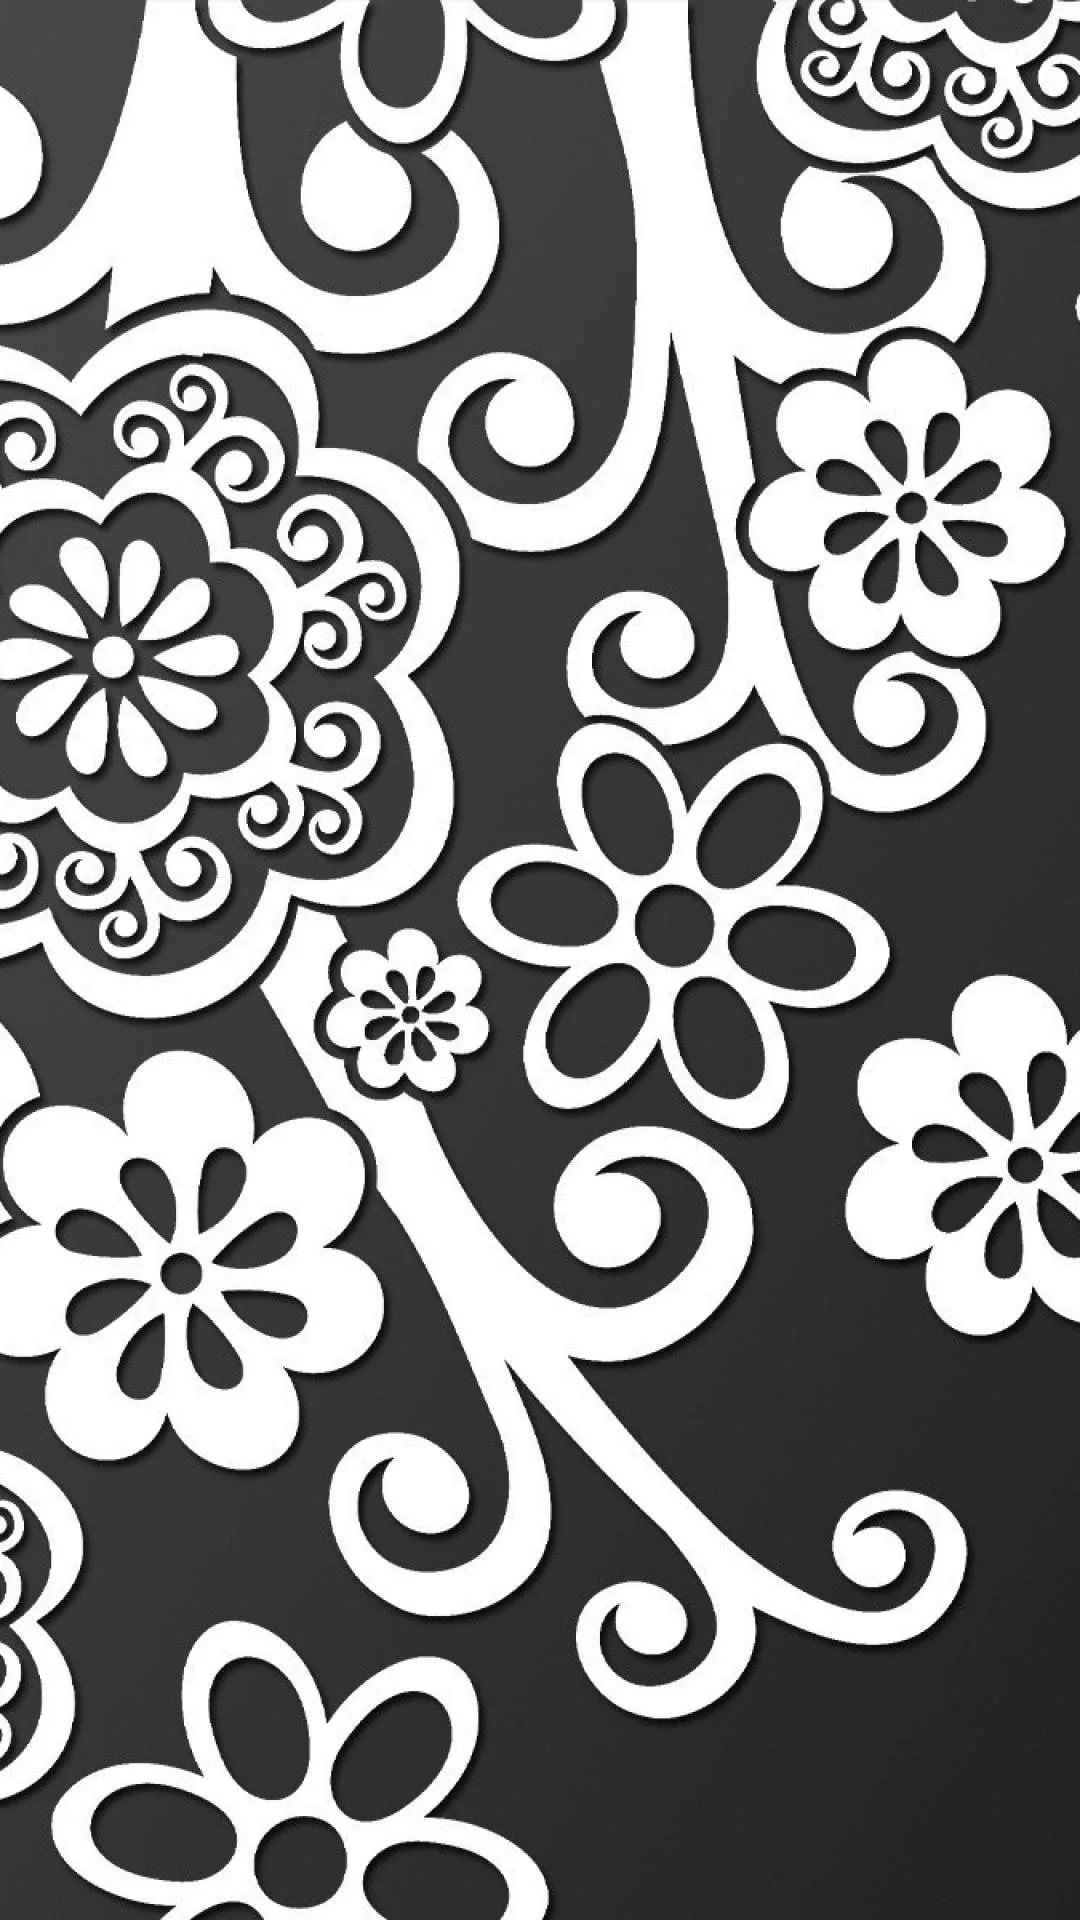 Black And White Flower Galaxy wallpaper iPhone